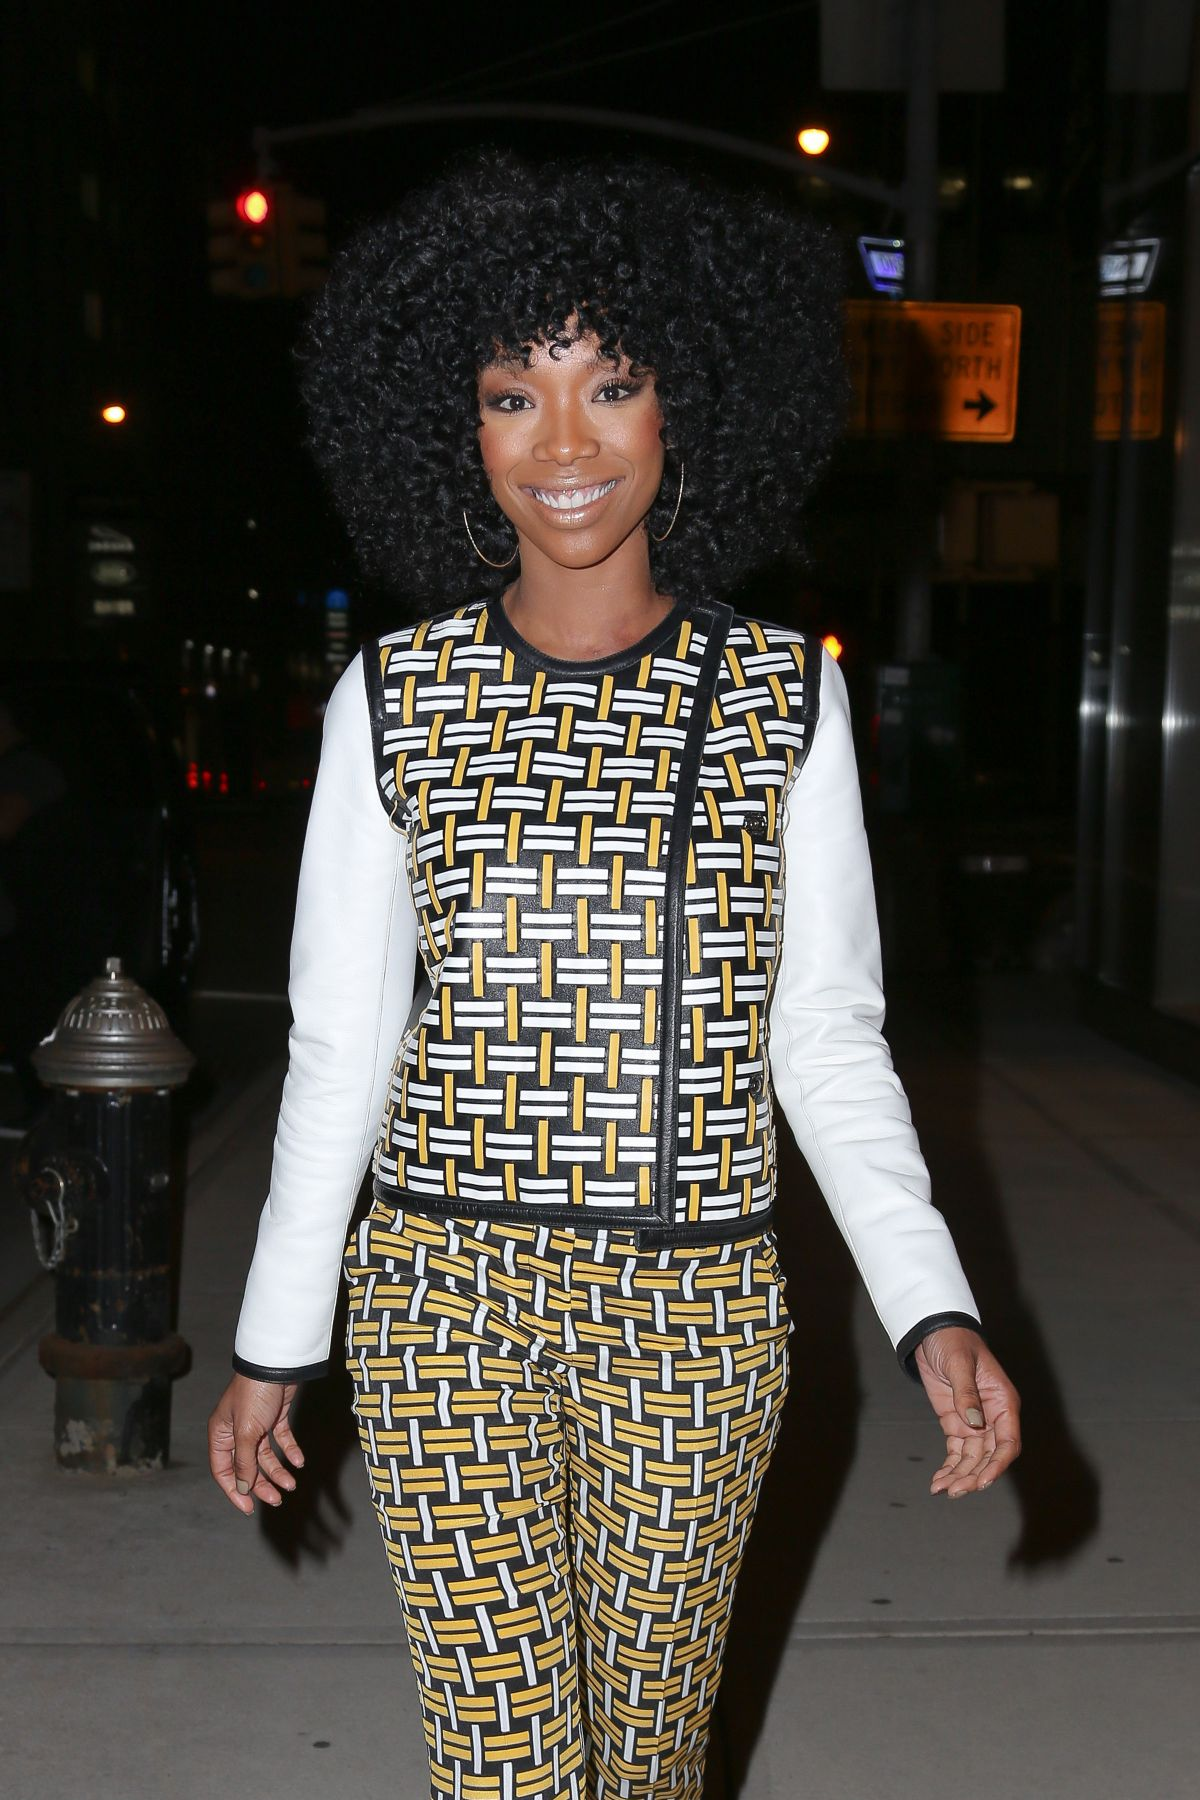 BRANDY NOORWOOD Out and About in New York